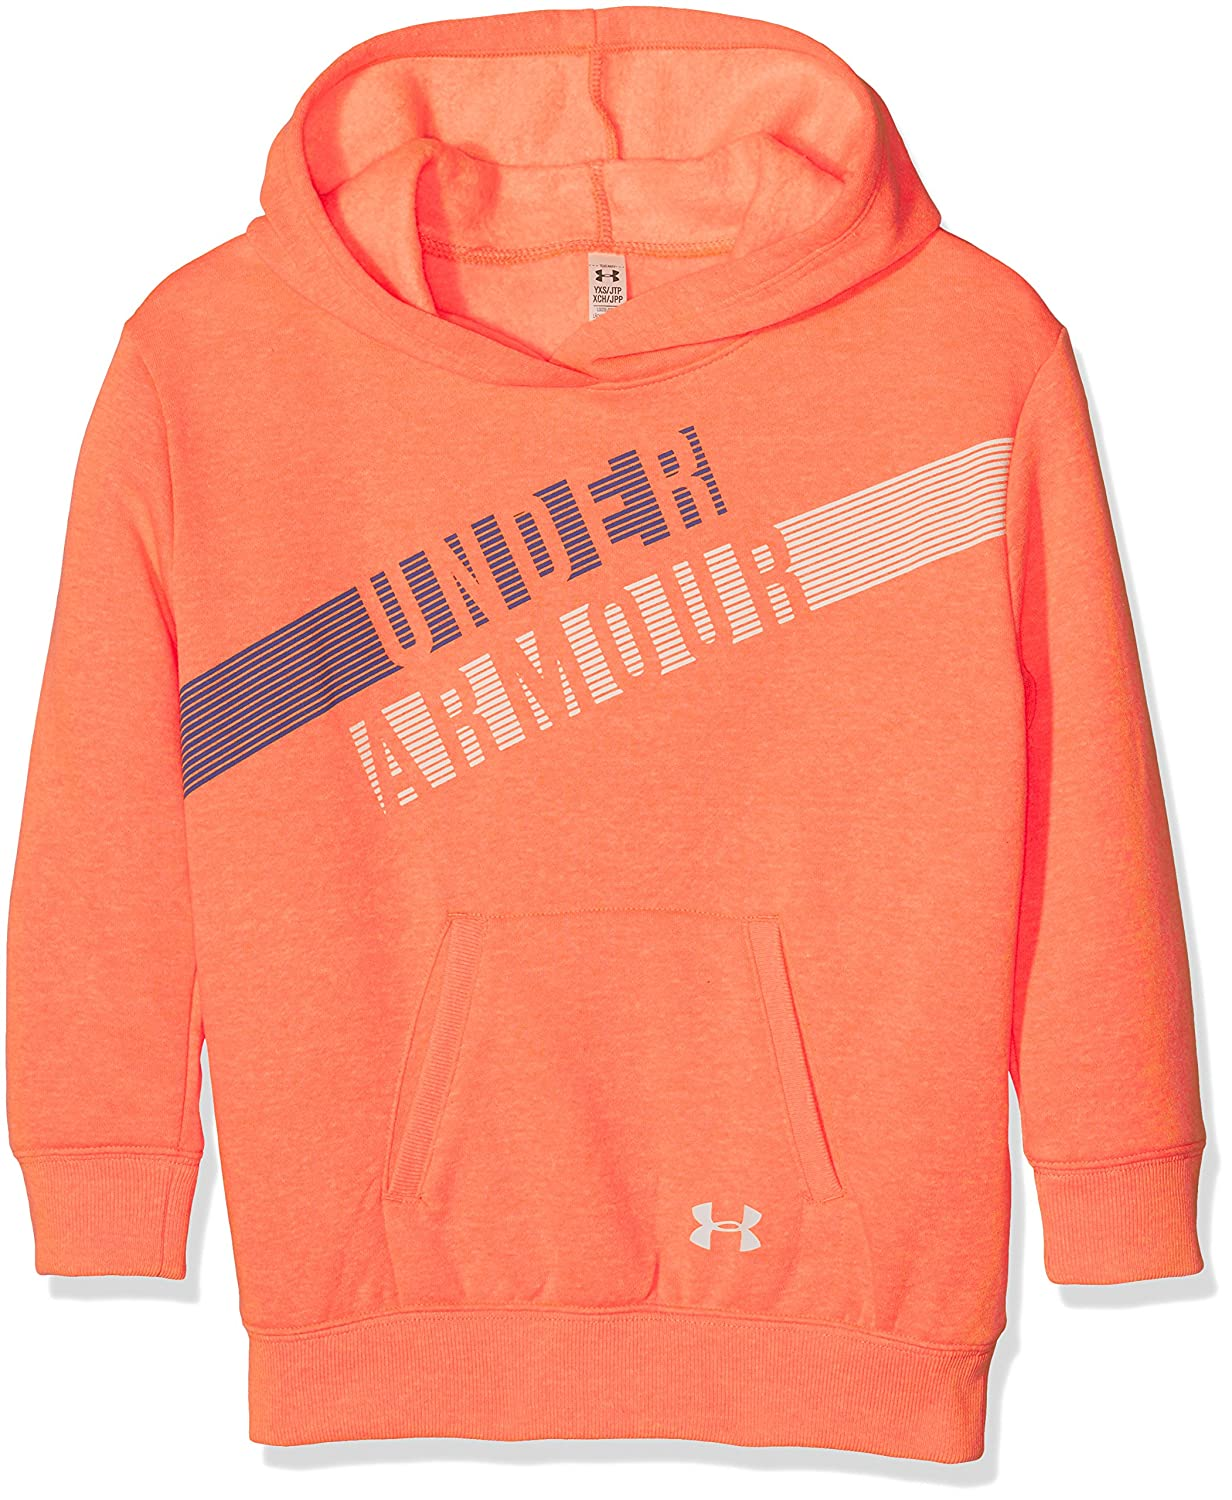 Under Armour Favorite Fleece Hoody, Felpa con Cappuccio Bambina 1289970-P